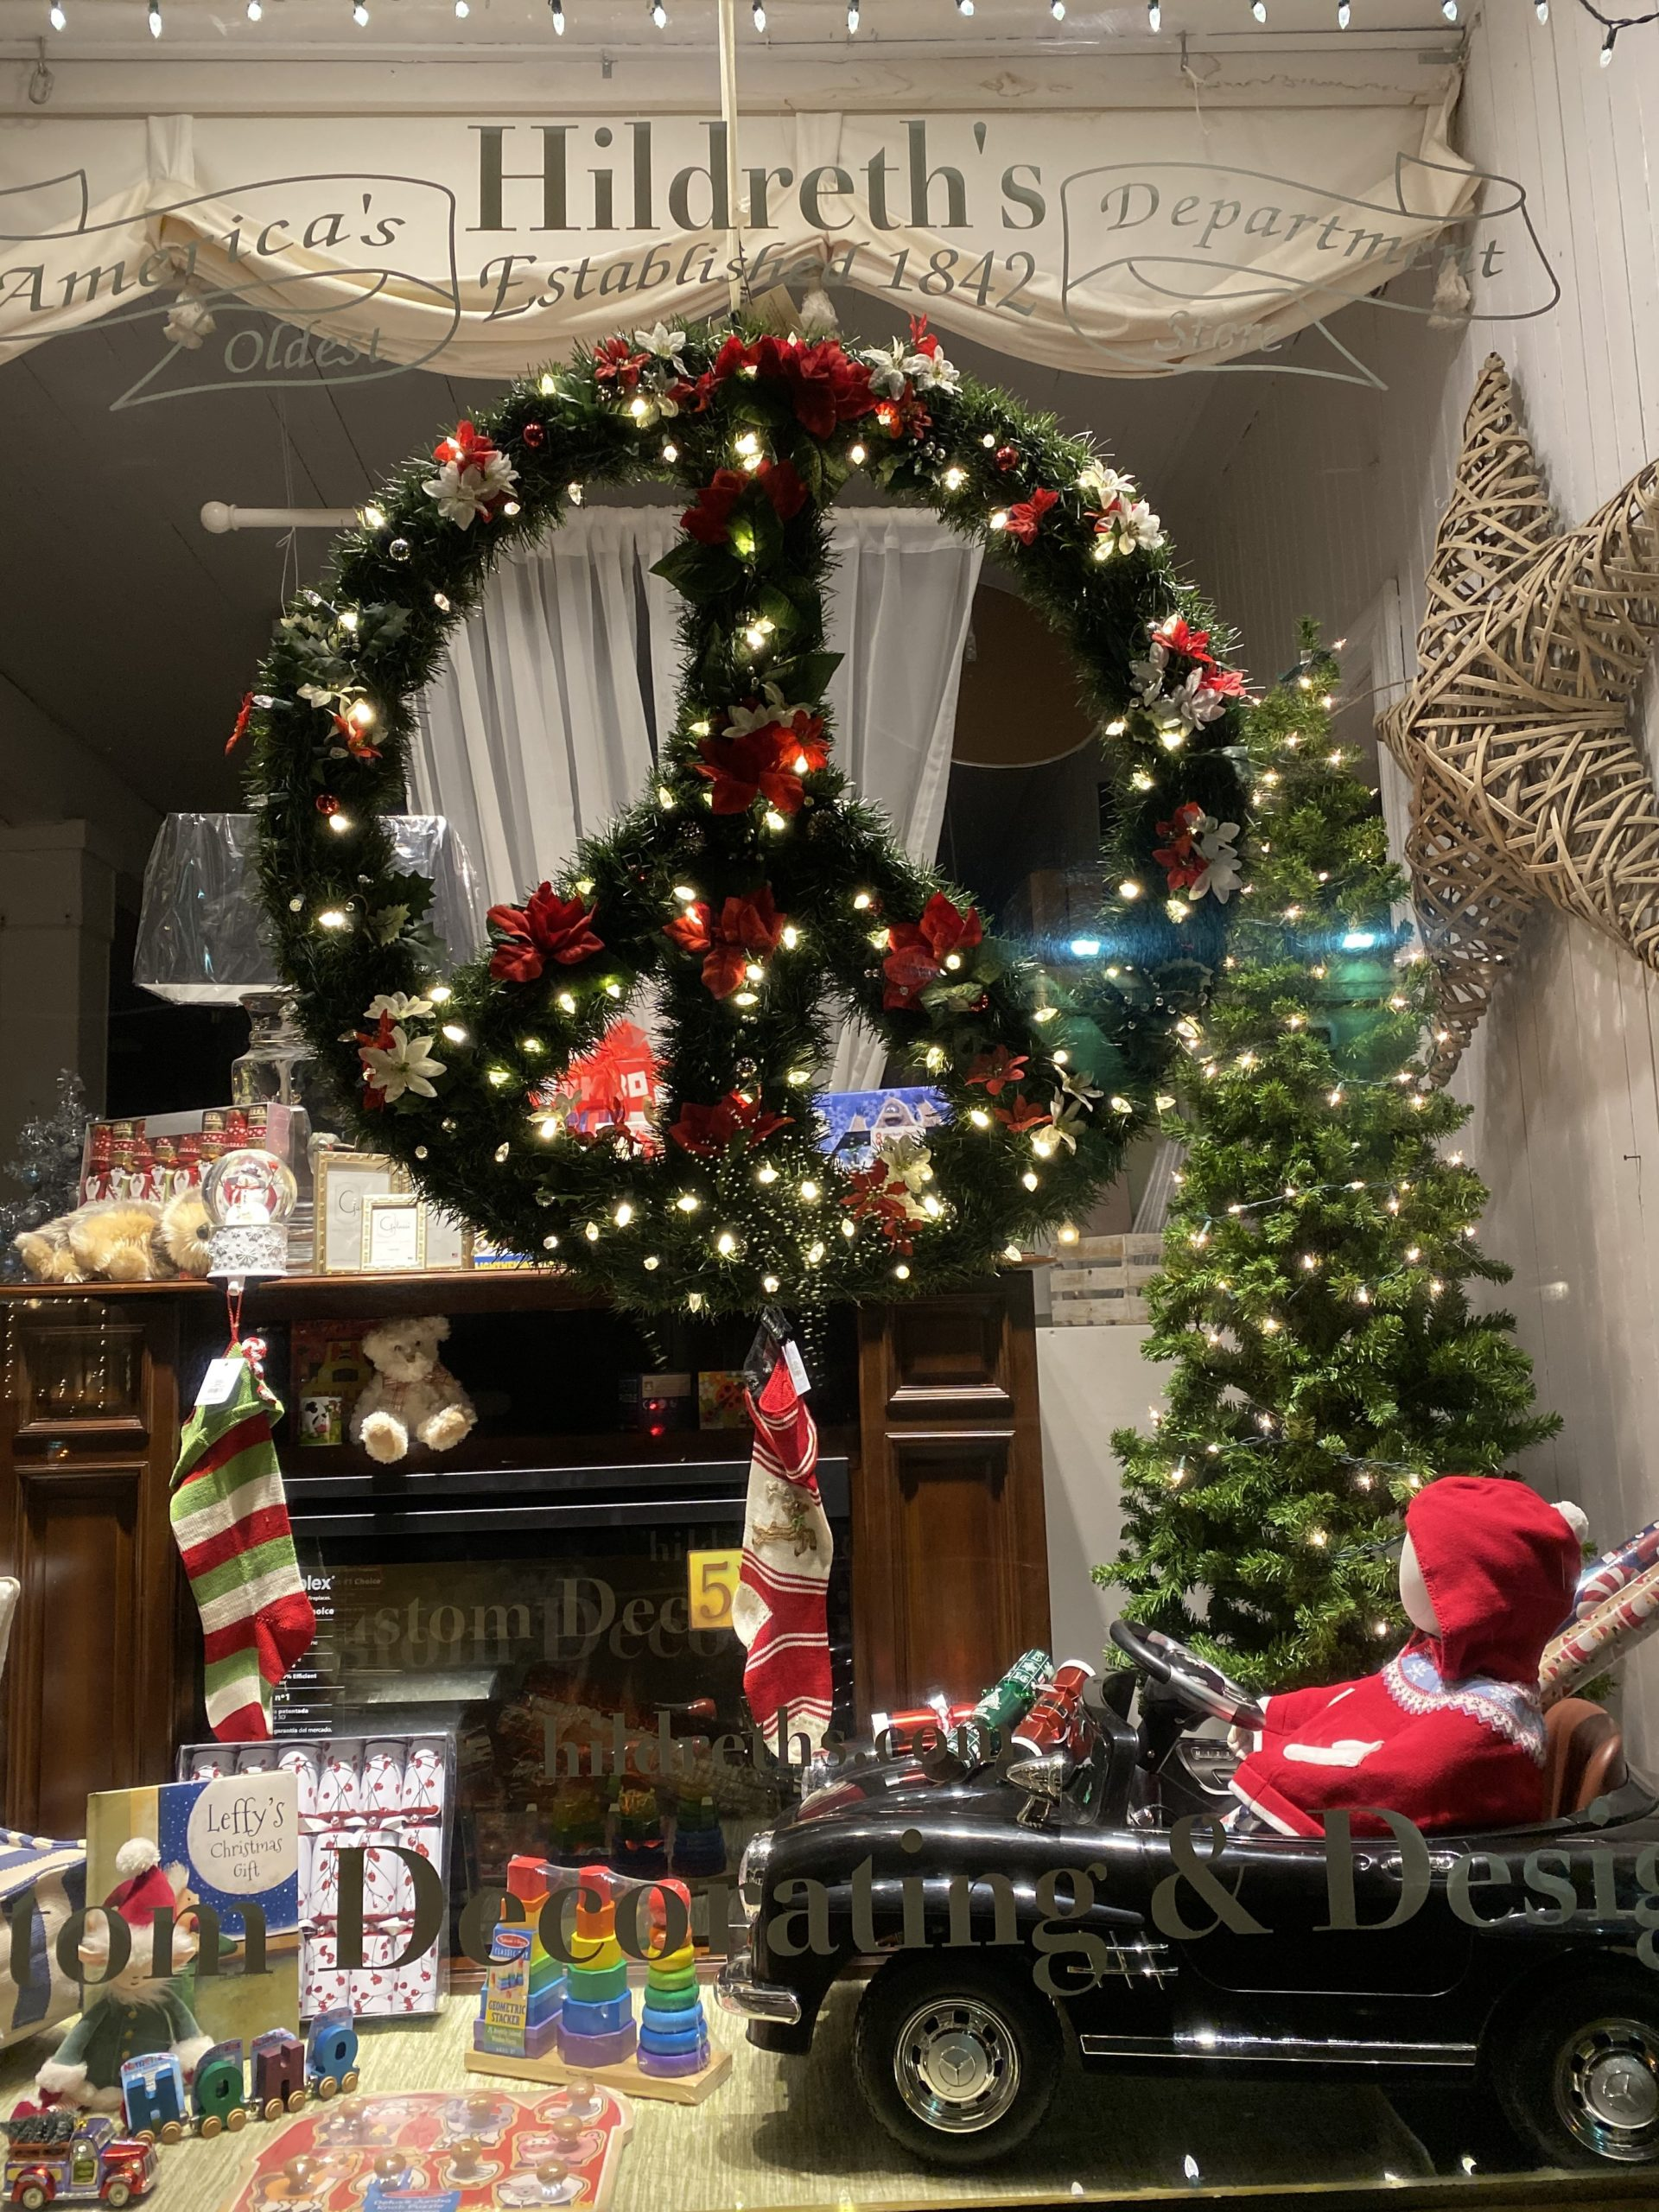 Hildreth's Department Store took first place in the window decorating contest sponsored by the Village of Southampton. DANA SHAW